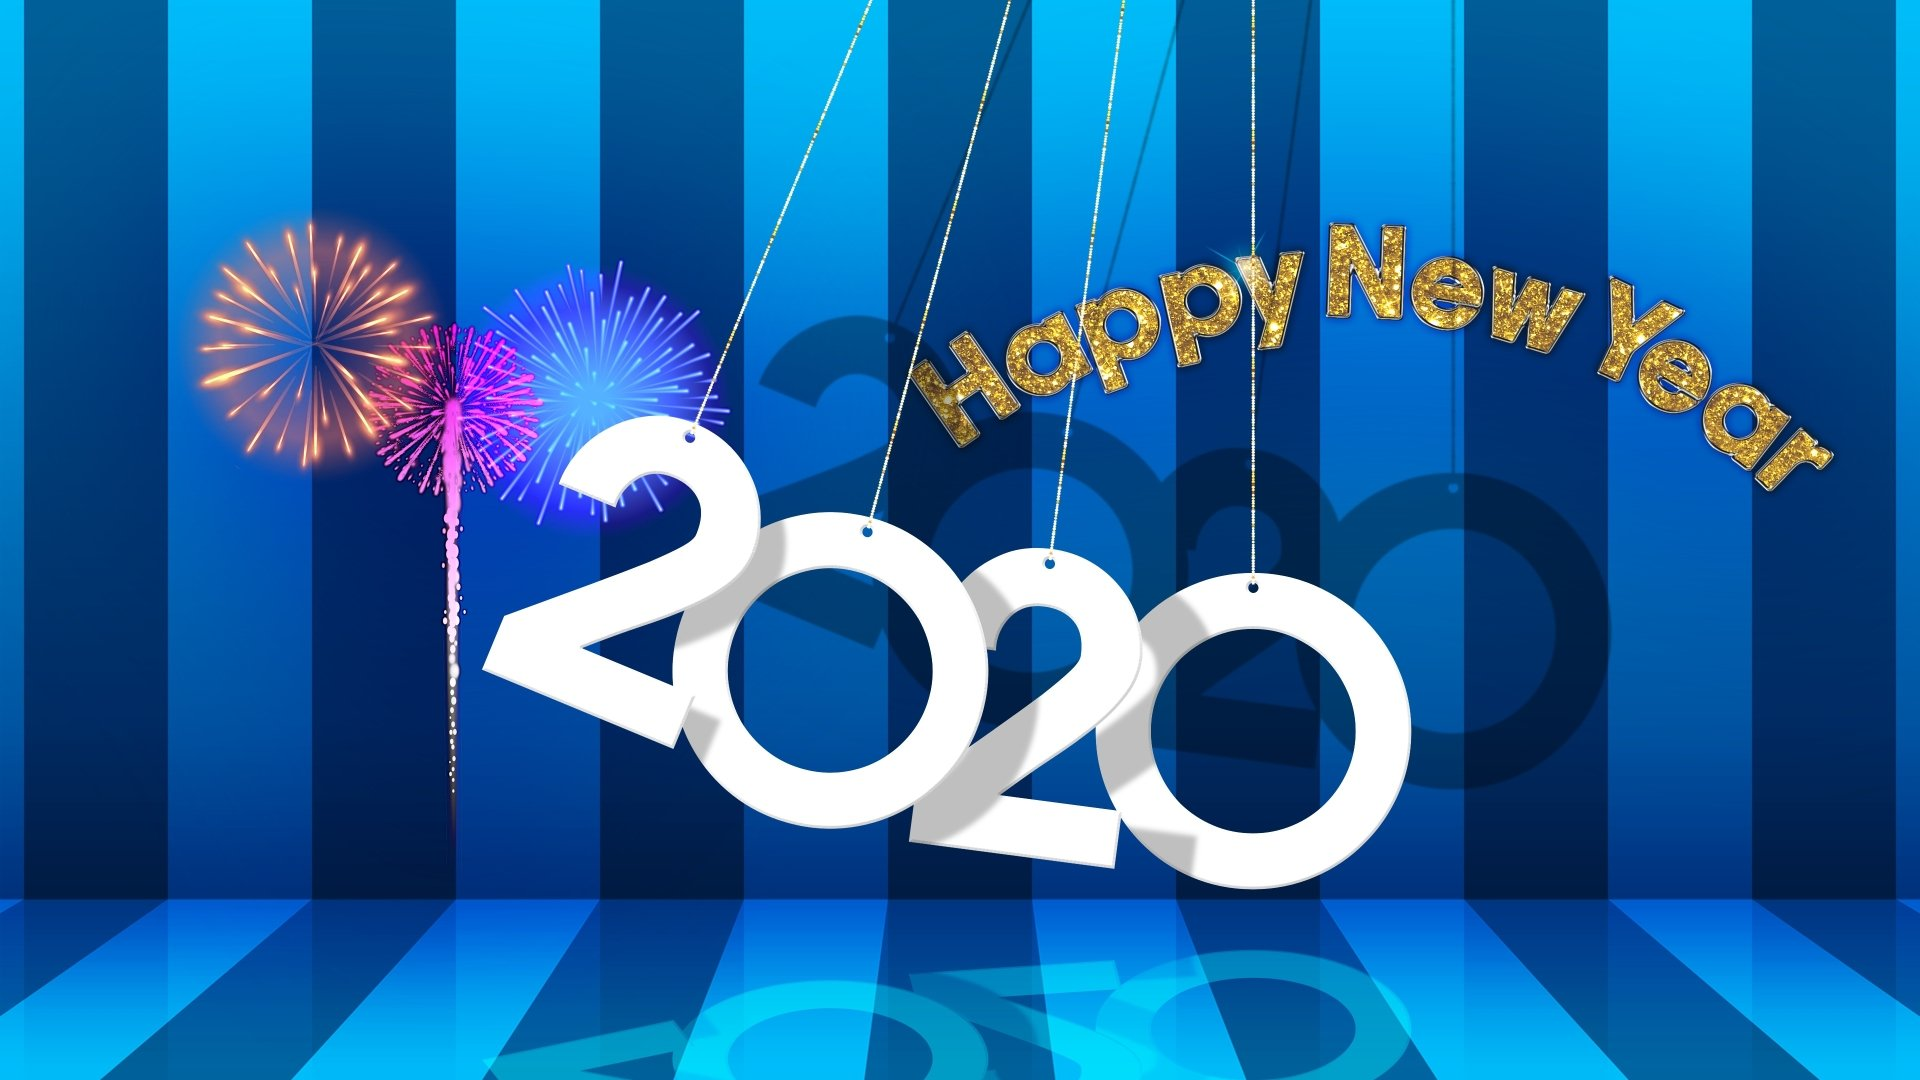 2020 New Year Wishes And Quotes Great Collection